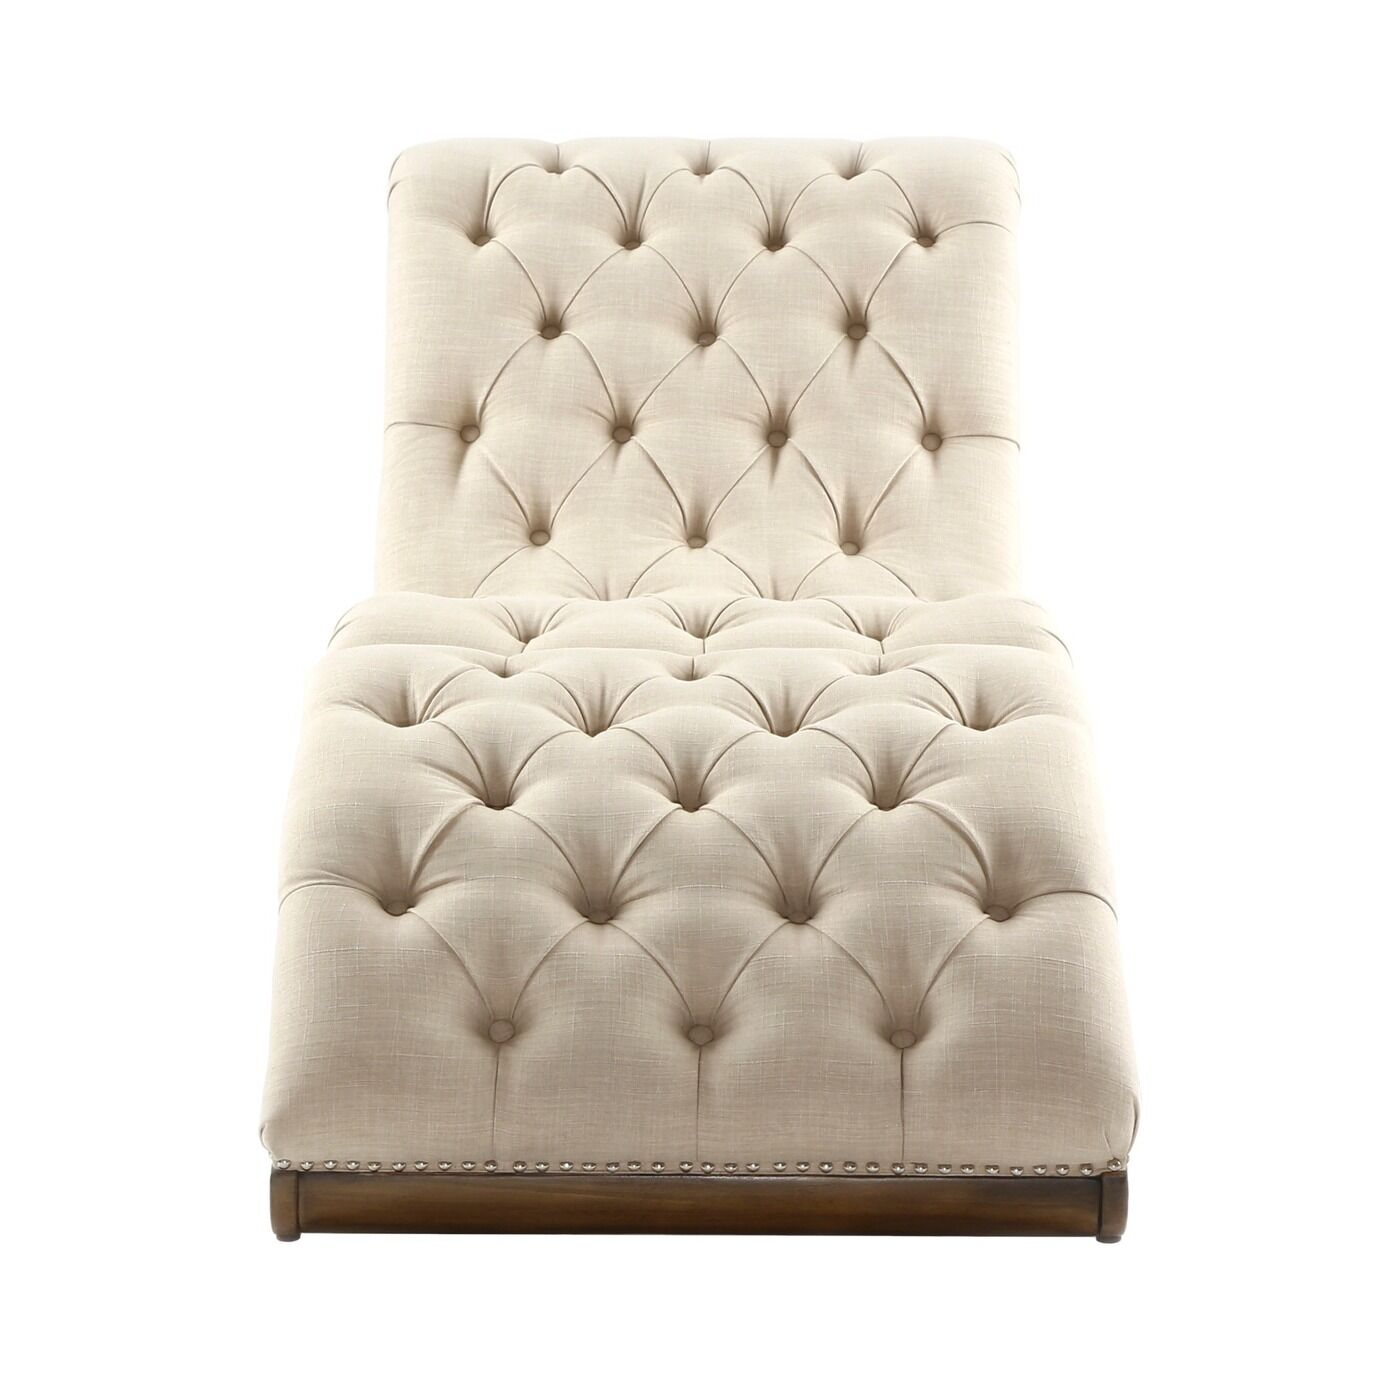 Contemporary Chaise Lounge Sofa: Tufted Chaise Lounge Chair Ottoman Beige Modern Bed